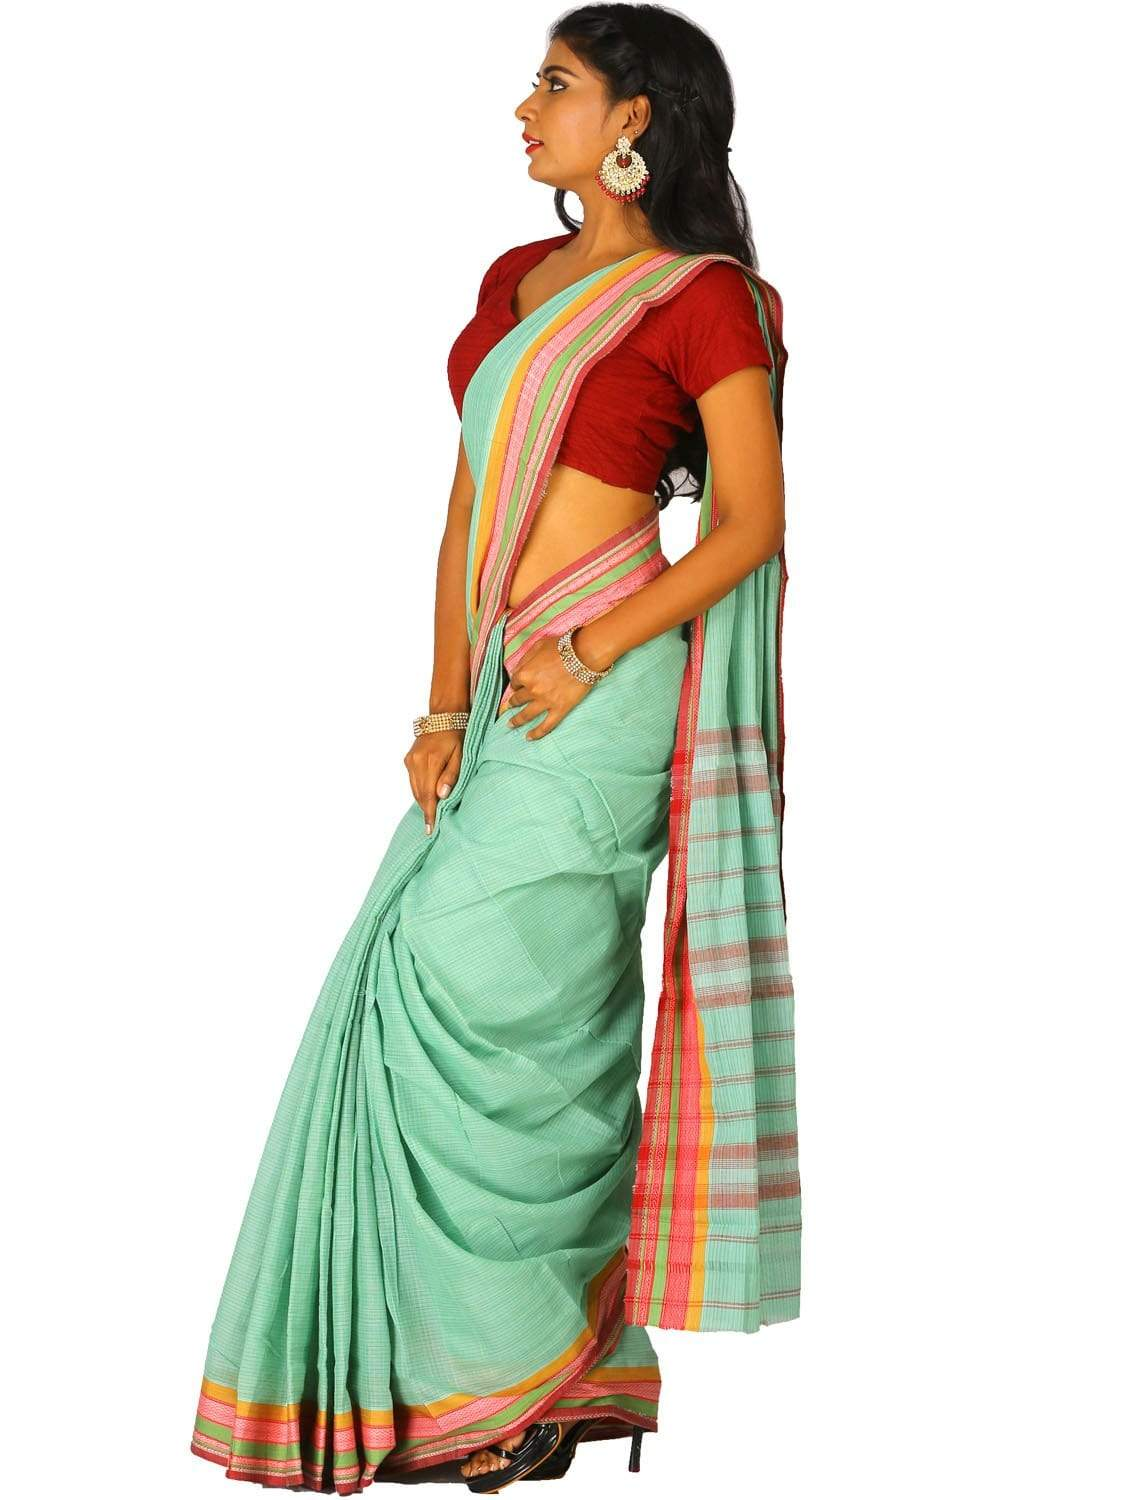 Turquoise Narayanpet Cotton Handloom Saree with Checks Design np0267